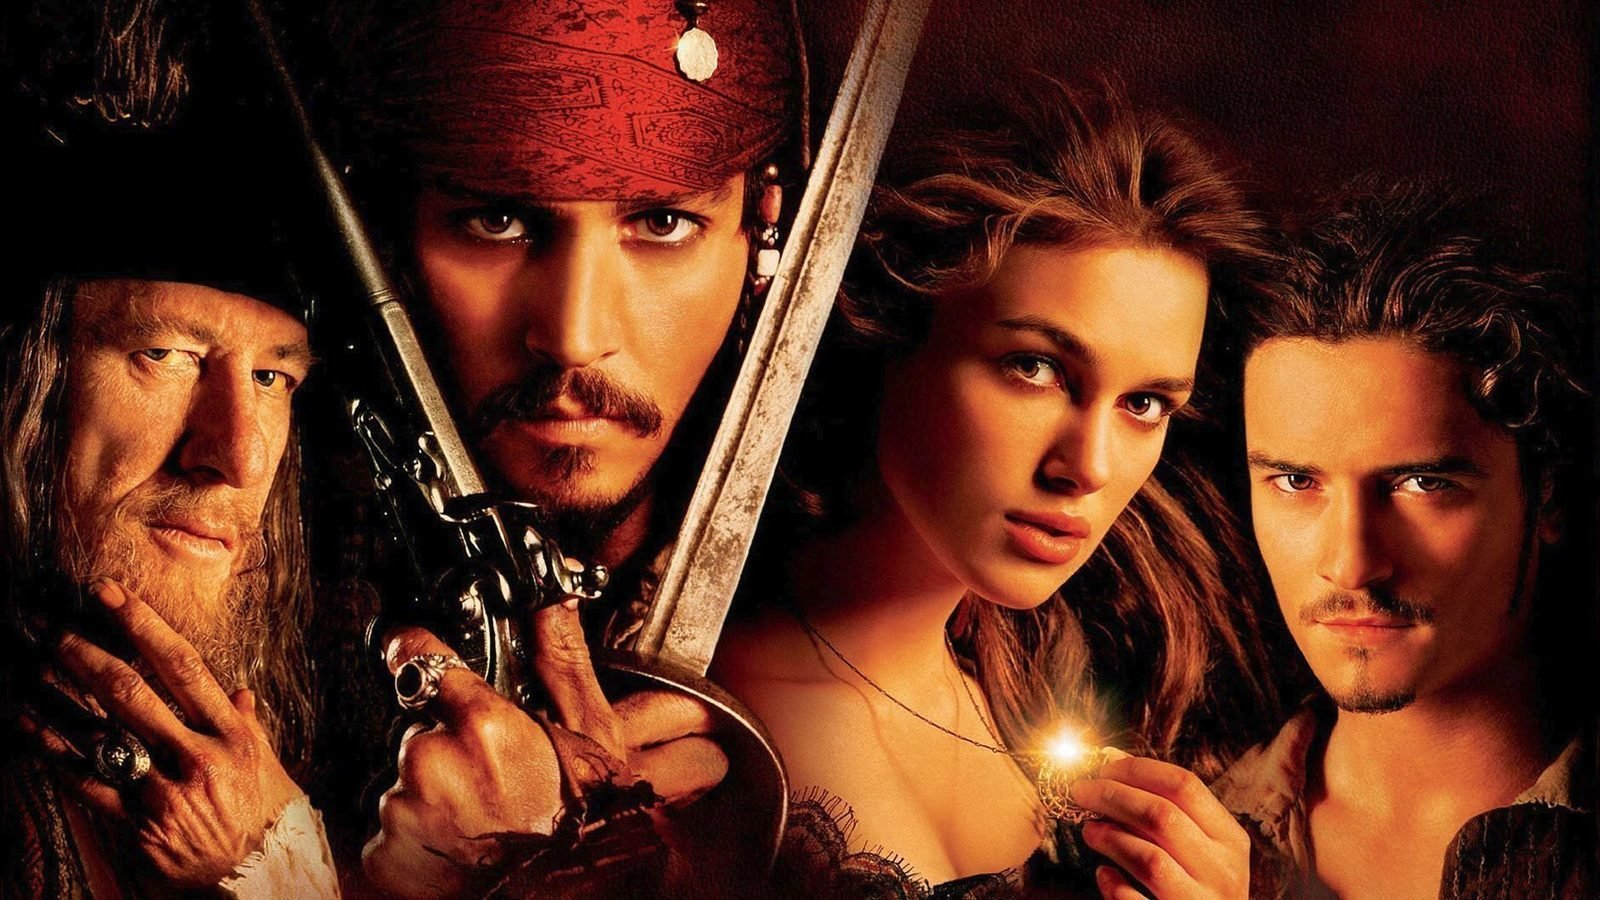 Pirates of the caribbeanporn sex stupid teen